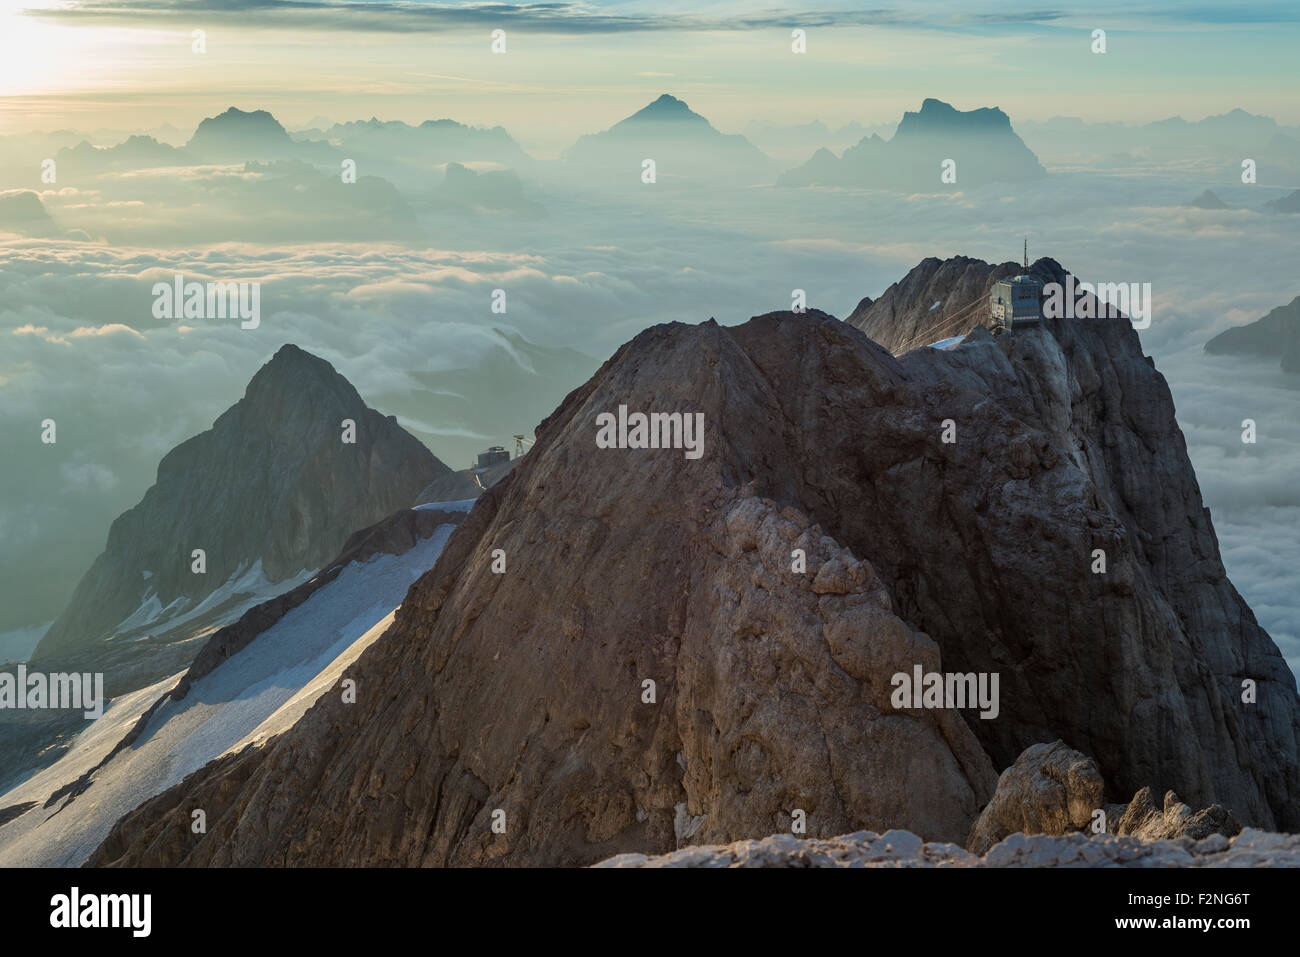 Punta Rocca with cableway station, 3265 m, view from the peak Punta Penia, at sunrise, Marmolada, Dolomites, Alps, - Stock Image